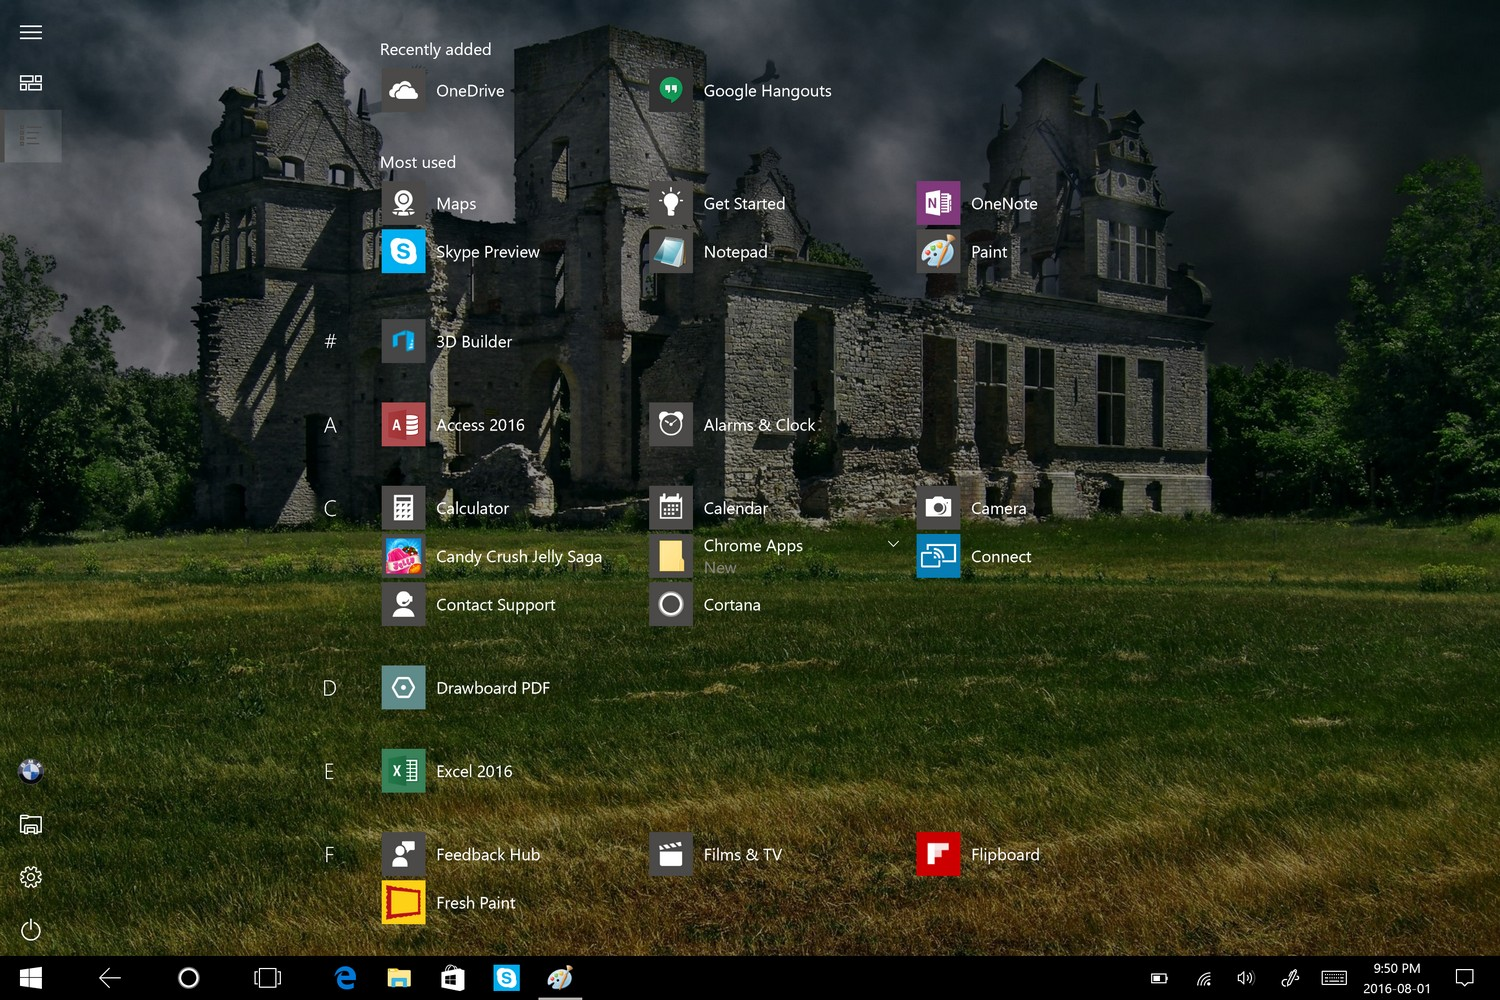 Tablet Mode changes, Windows Everywhere, and Skype - Windows